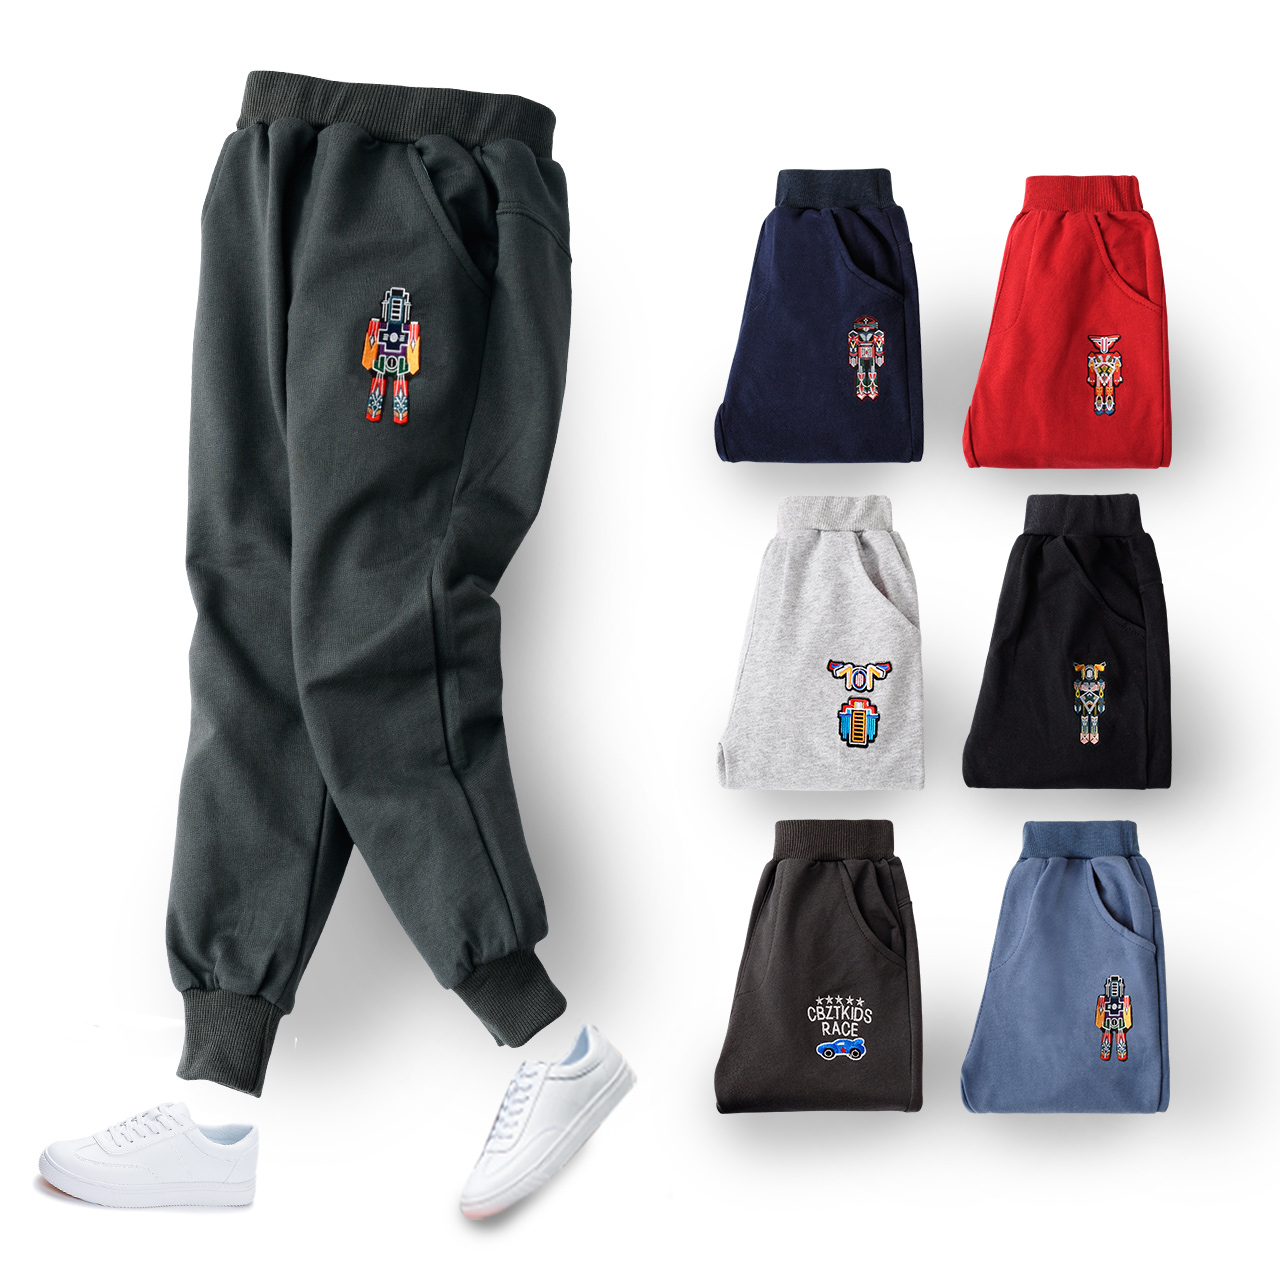 Childrens pants, boys sports pants, spring and autumn childrens wear, new knitted pants, middle school childrens casual pants, cotton baby pants